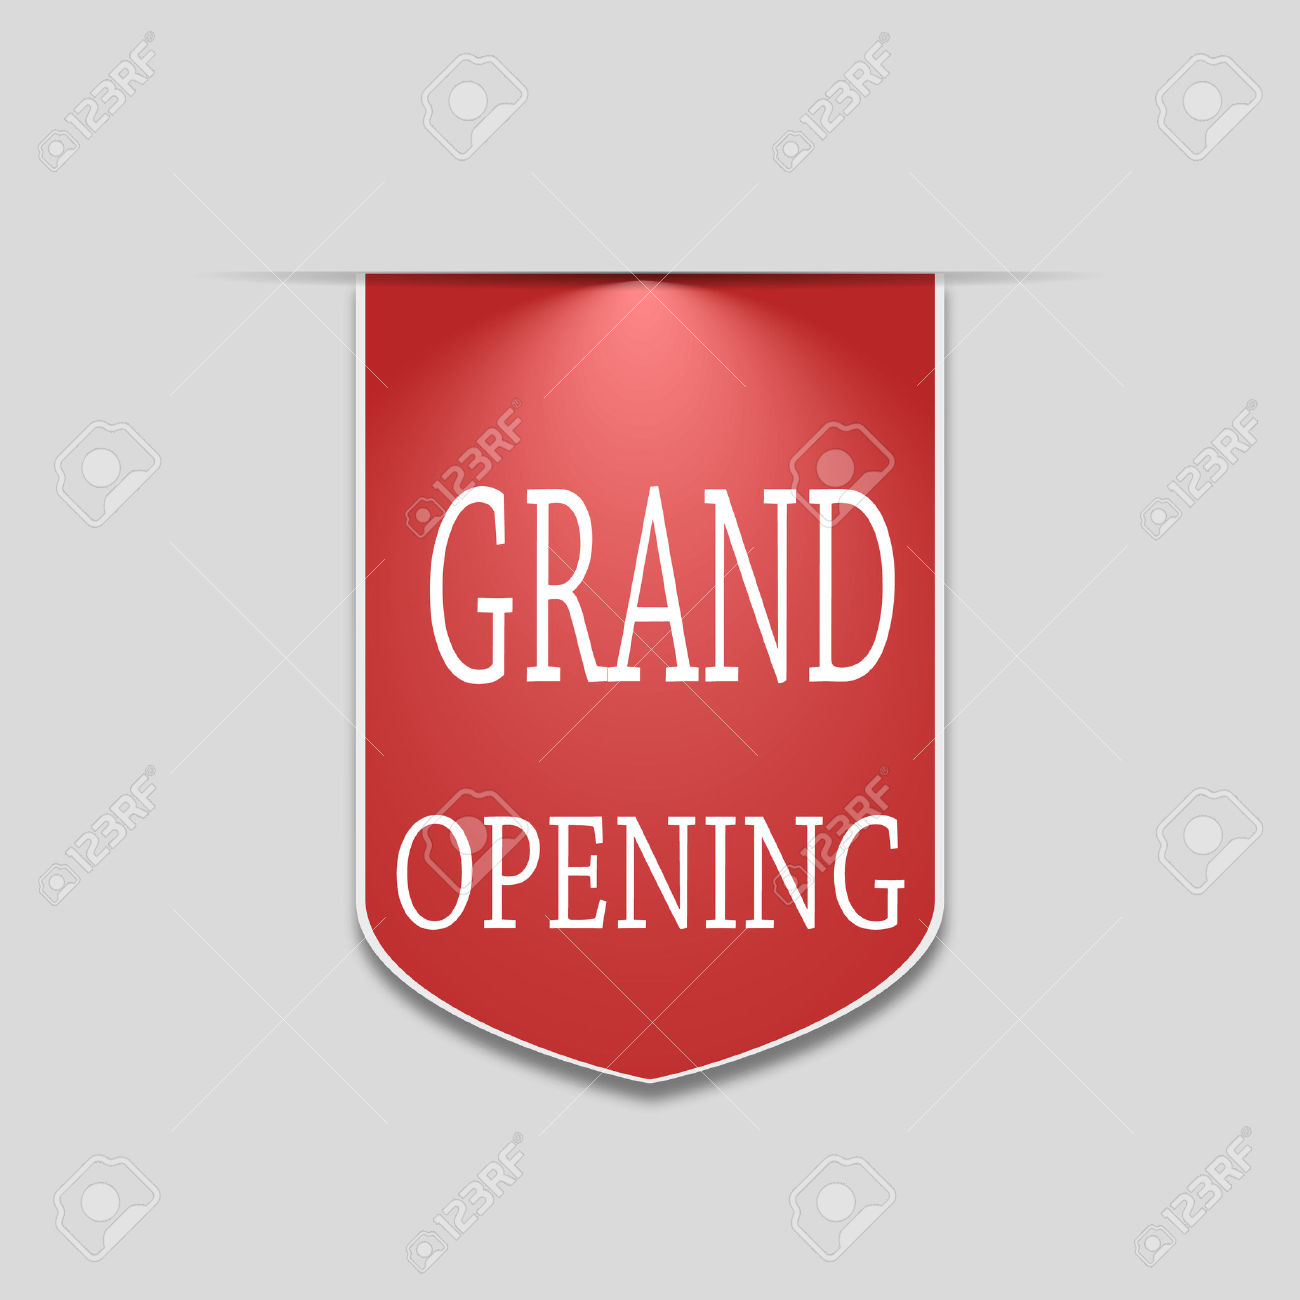 961 Store Openings Cliparts, Stock Vector And Royalty Free Store.